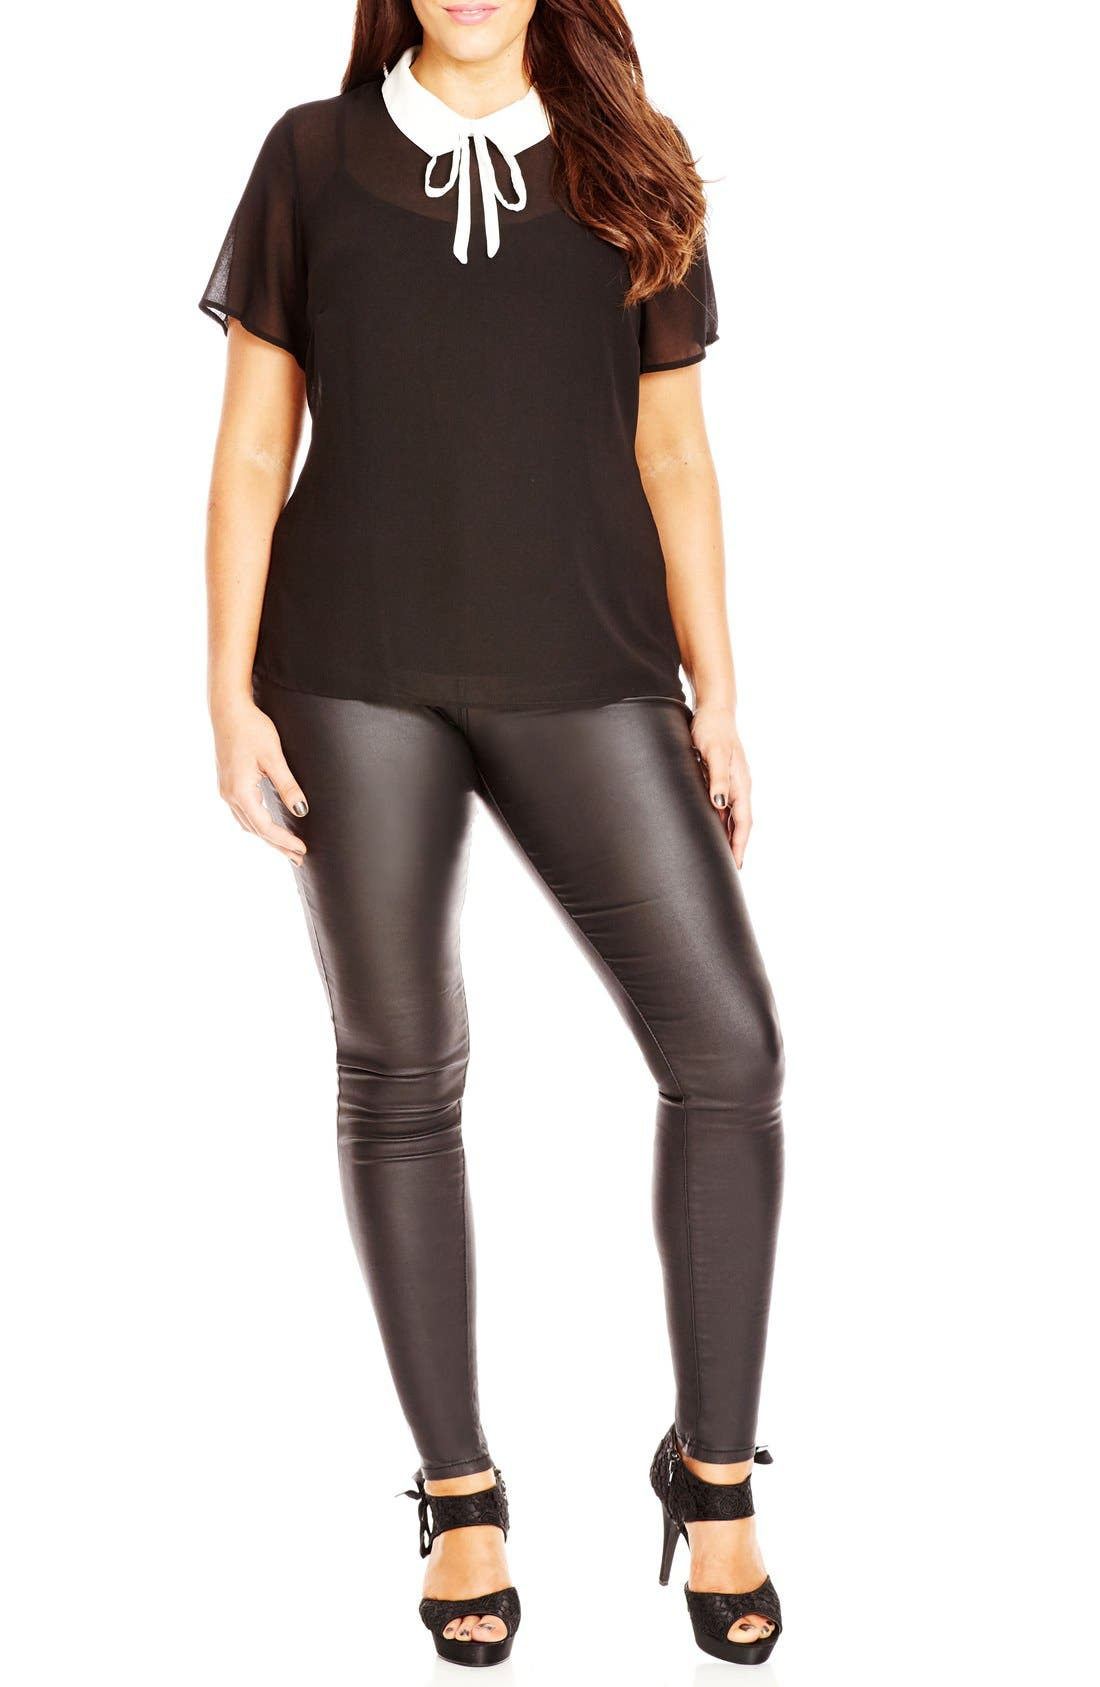 Alternate Image 1 Selected - City Chic 'Just a Girl' Top (Plus Size)